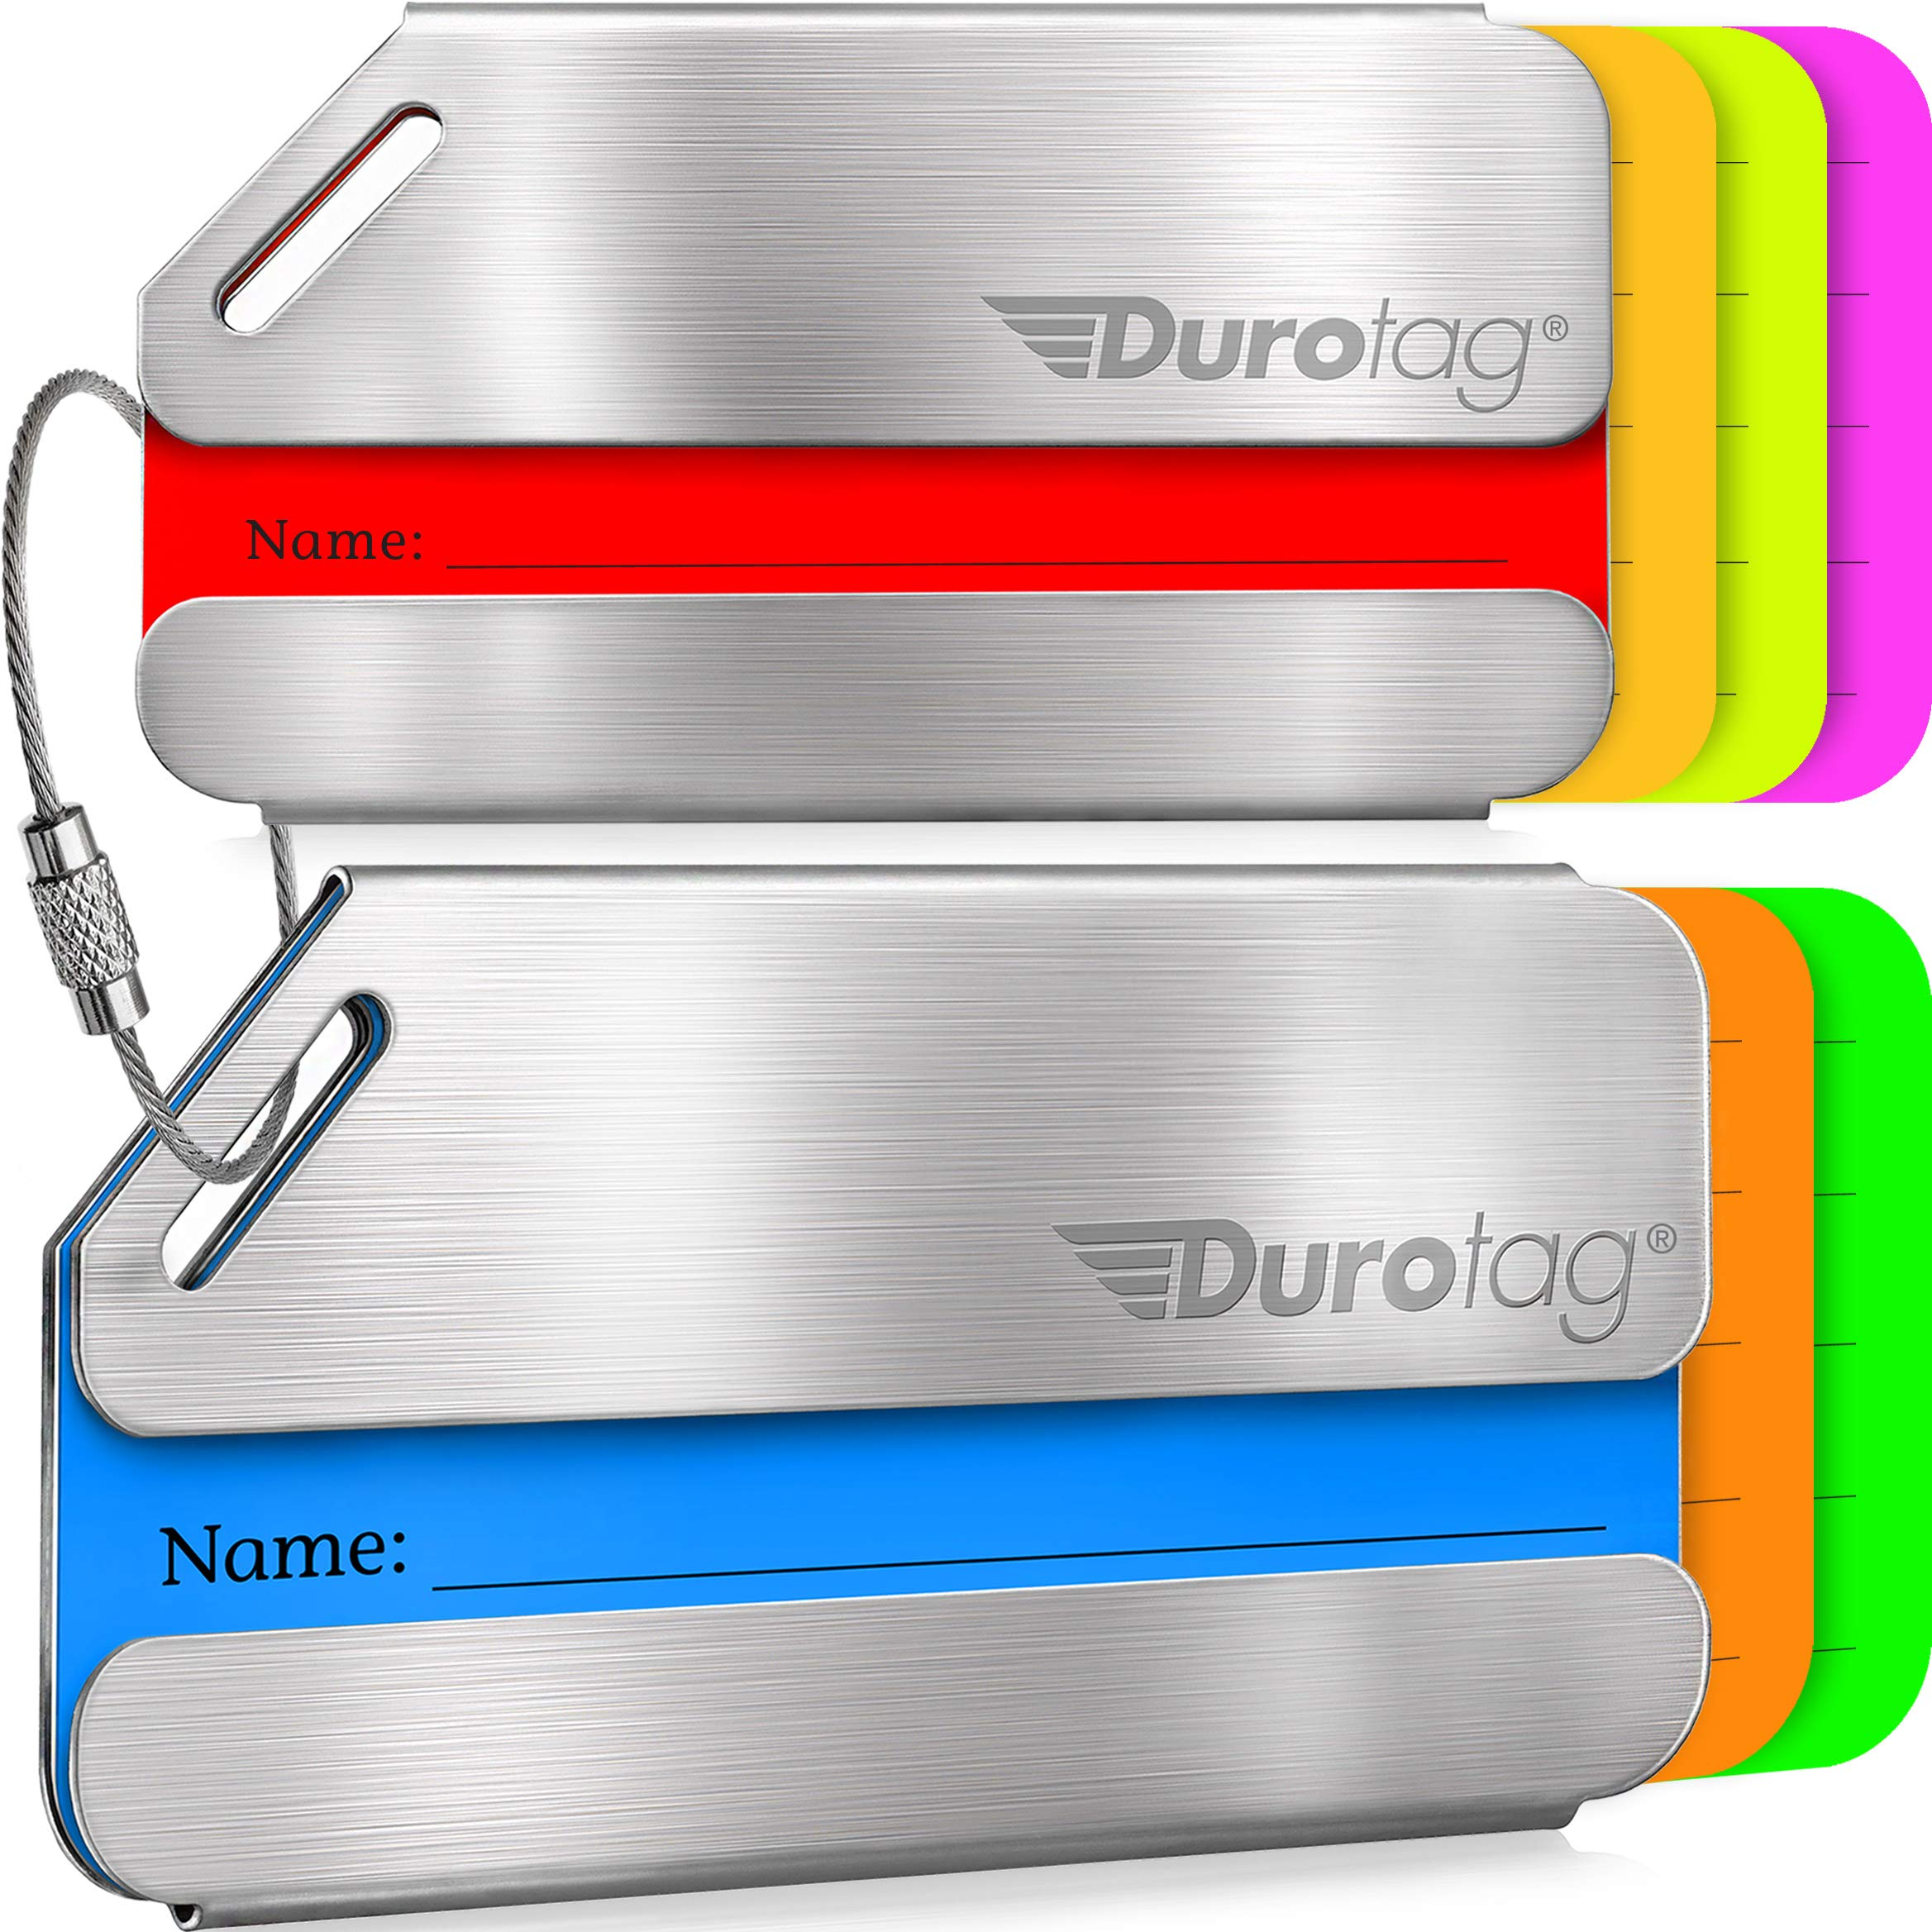 Durotag Luggage Tags Personalized Custom Stainless Steel Travel Bag Tag ID 2 Set by Durotag